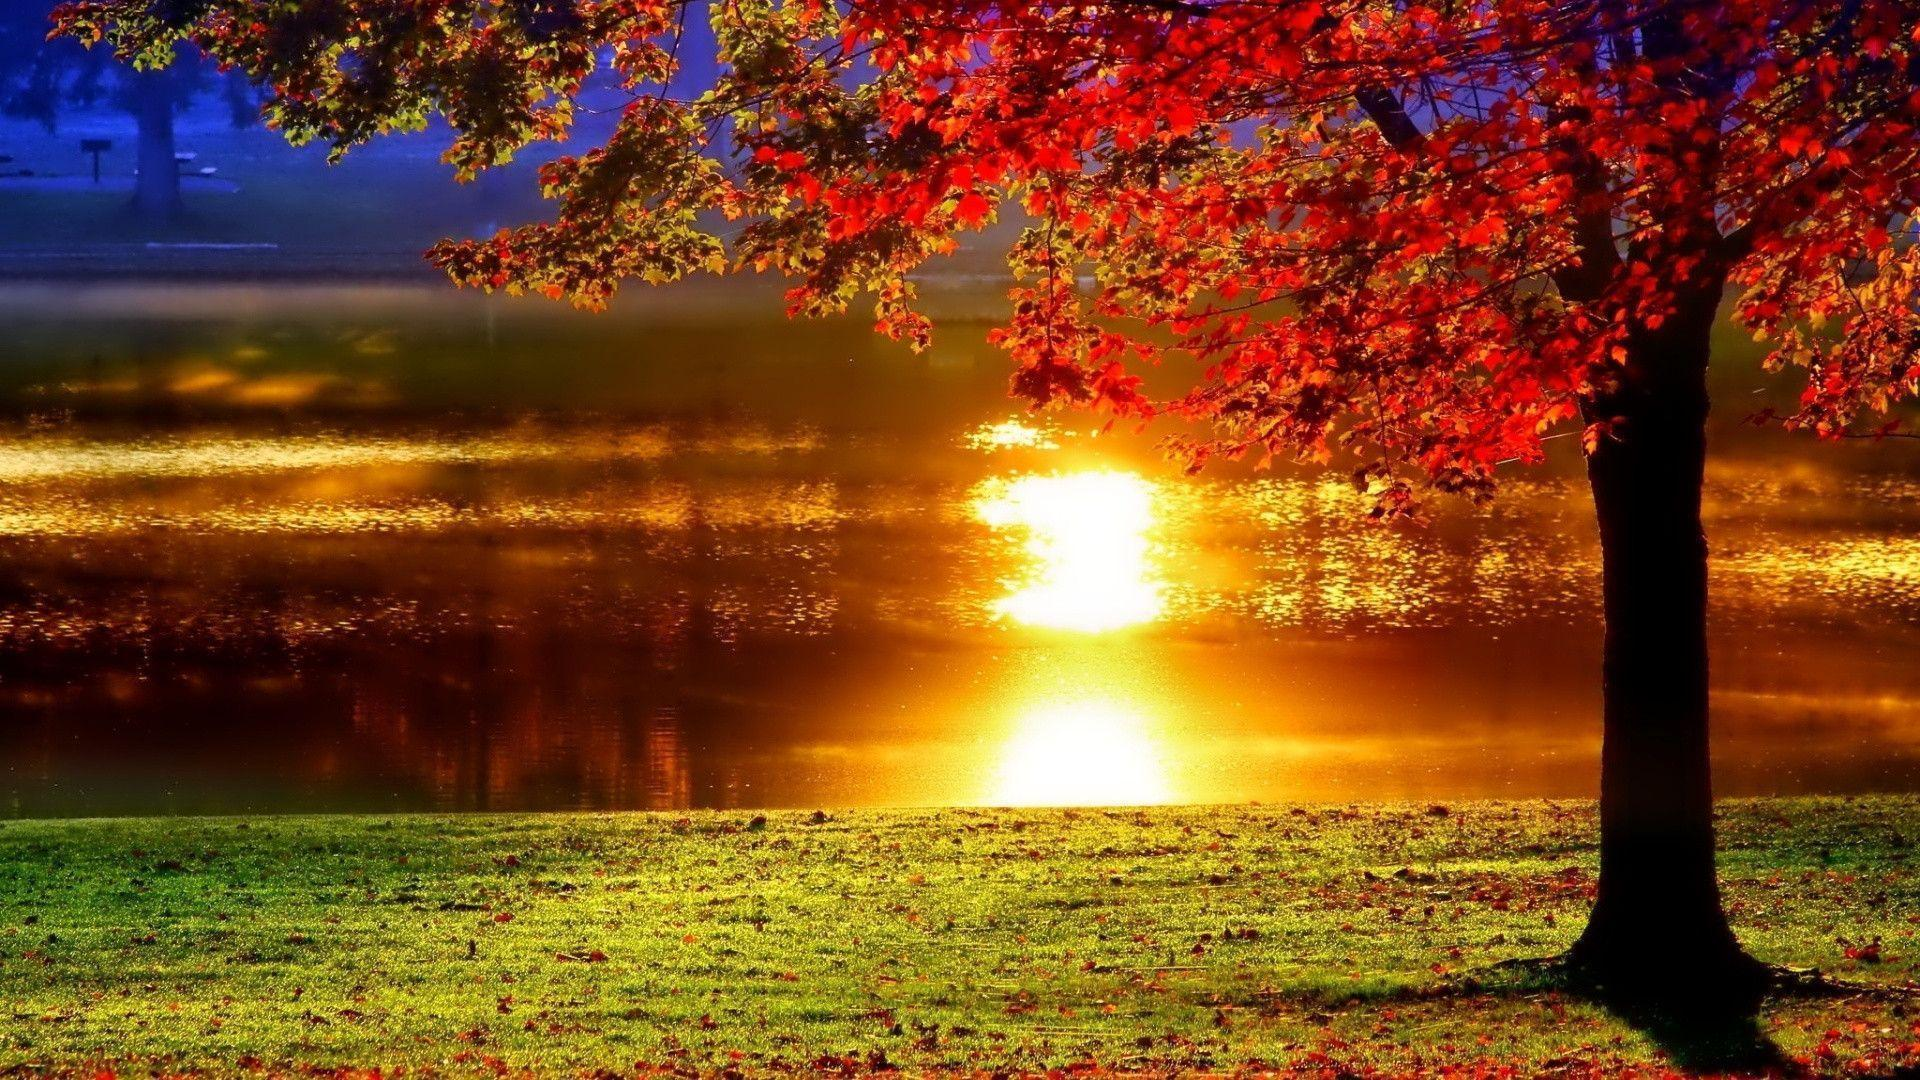 LAKESIDE SUNSET REFLECTION Desktop Background | Desktop Backgrounds HQ